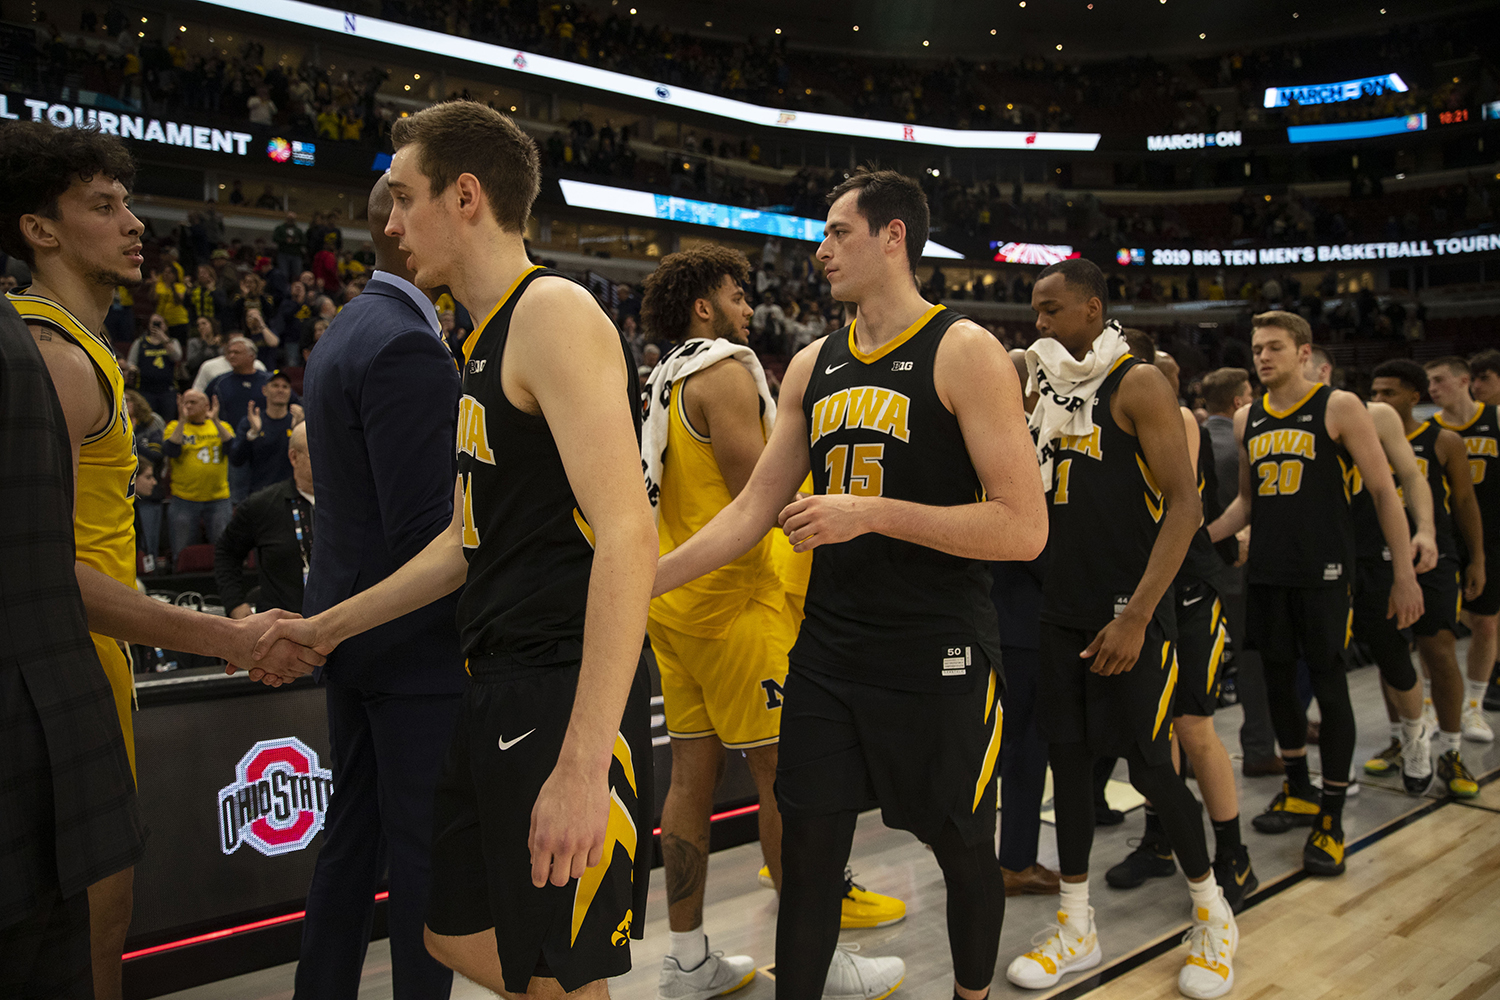 Iowa+shakes+hands+with+Michigan+after+the+Iowa%2FMichigan+Big+Ten+Tournament+men%27s+basketball+game+in+the+United+Center+in+Chicago+on+Friday%2C+March+15%2C+2019.+The+Wolverines+defeated+the+Hawkeyes%2C+74-53.+